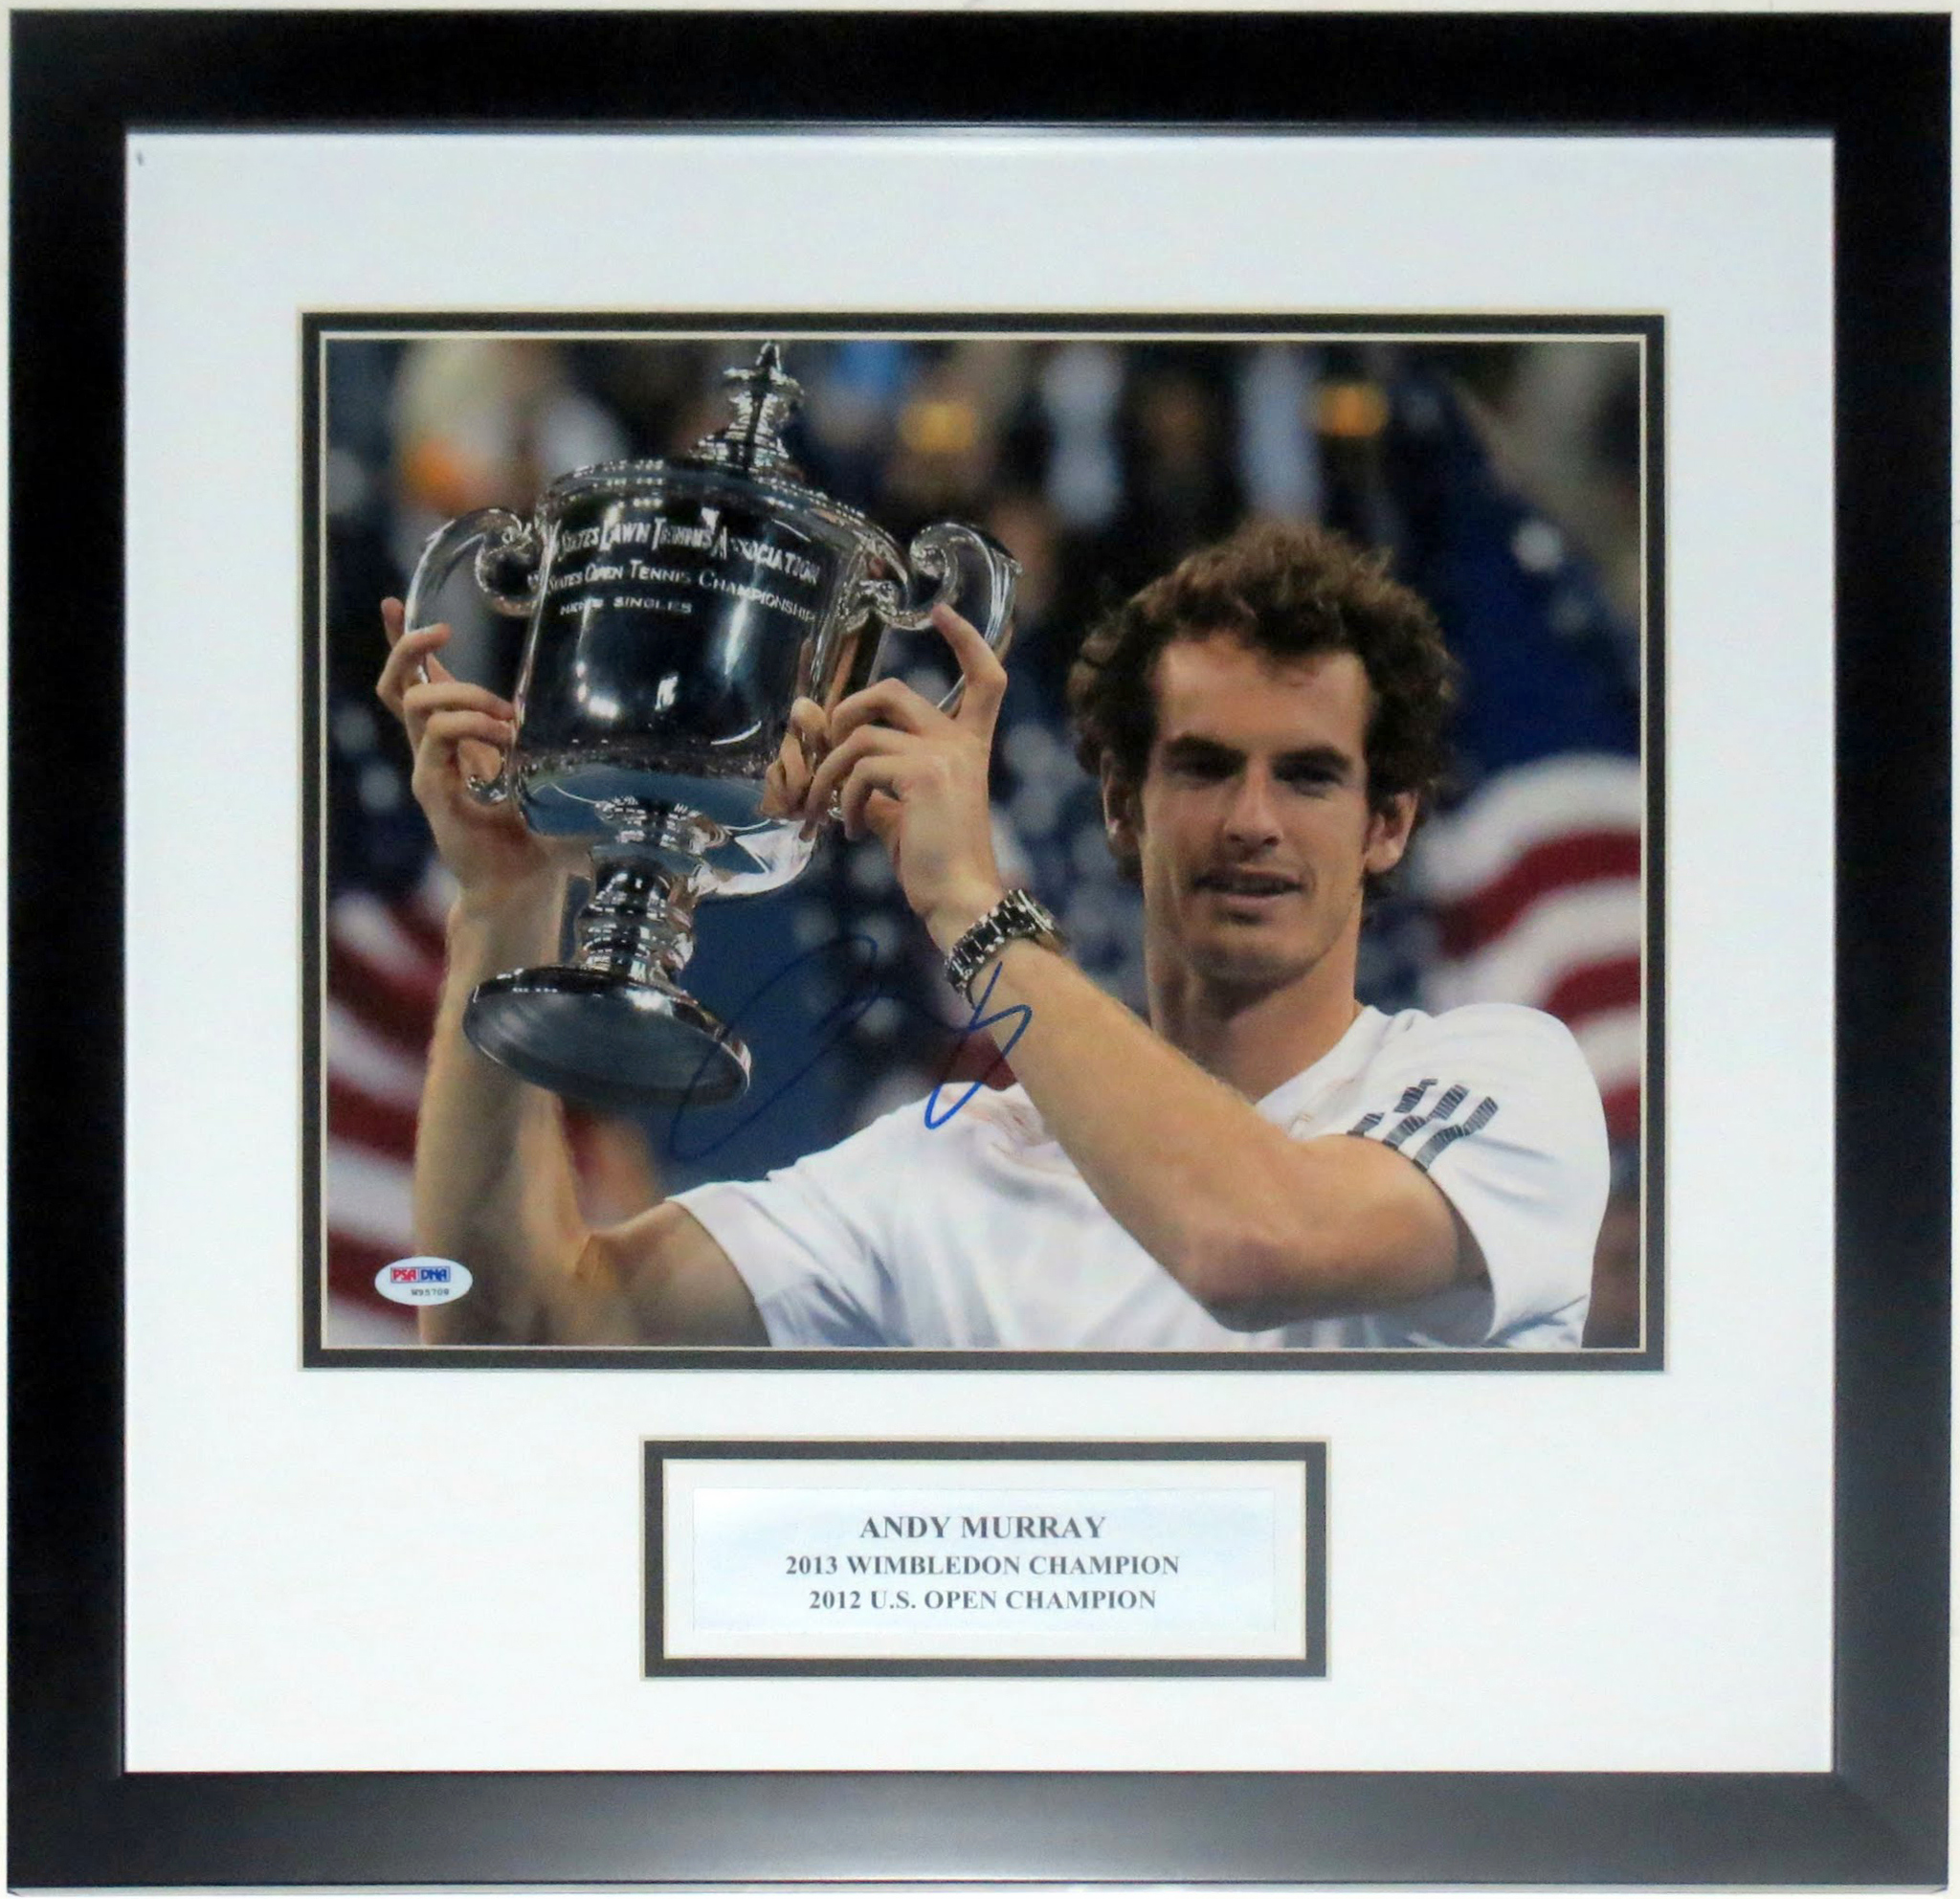 Andy Murray Autographed U.S. Open 11x14 Photo - PSA DNA COA Authenticated - Custom Framed & Plate